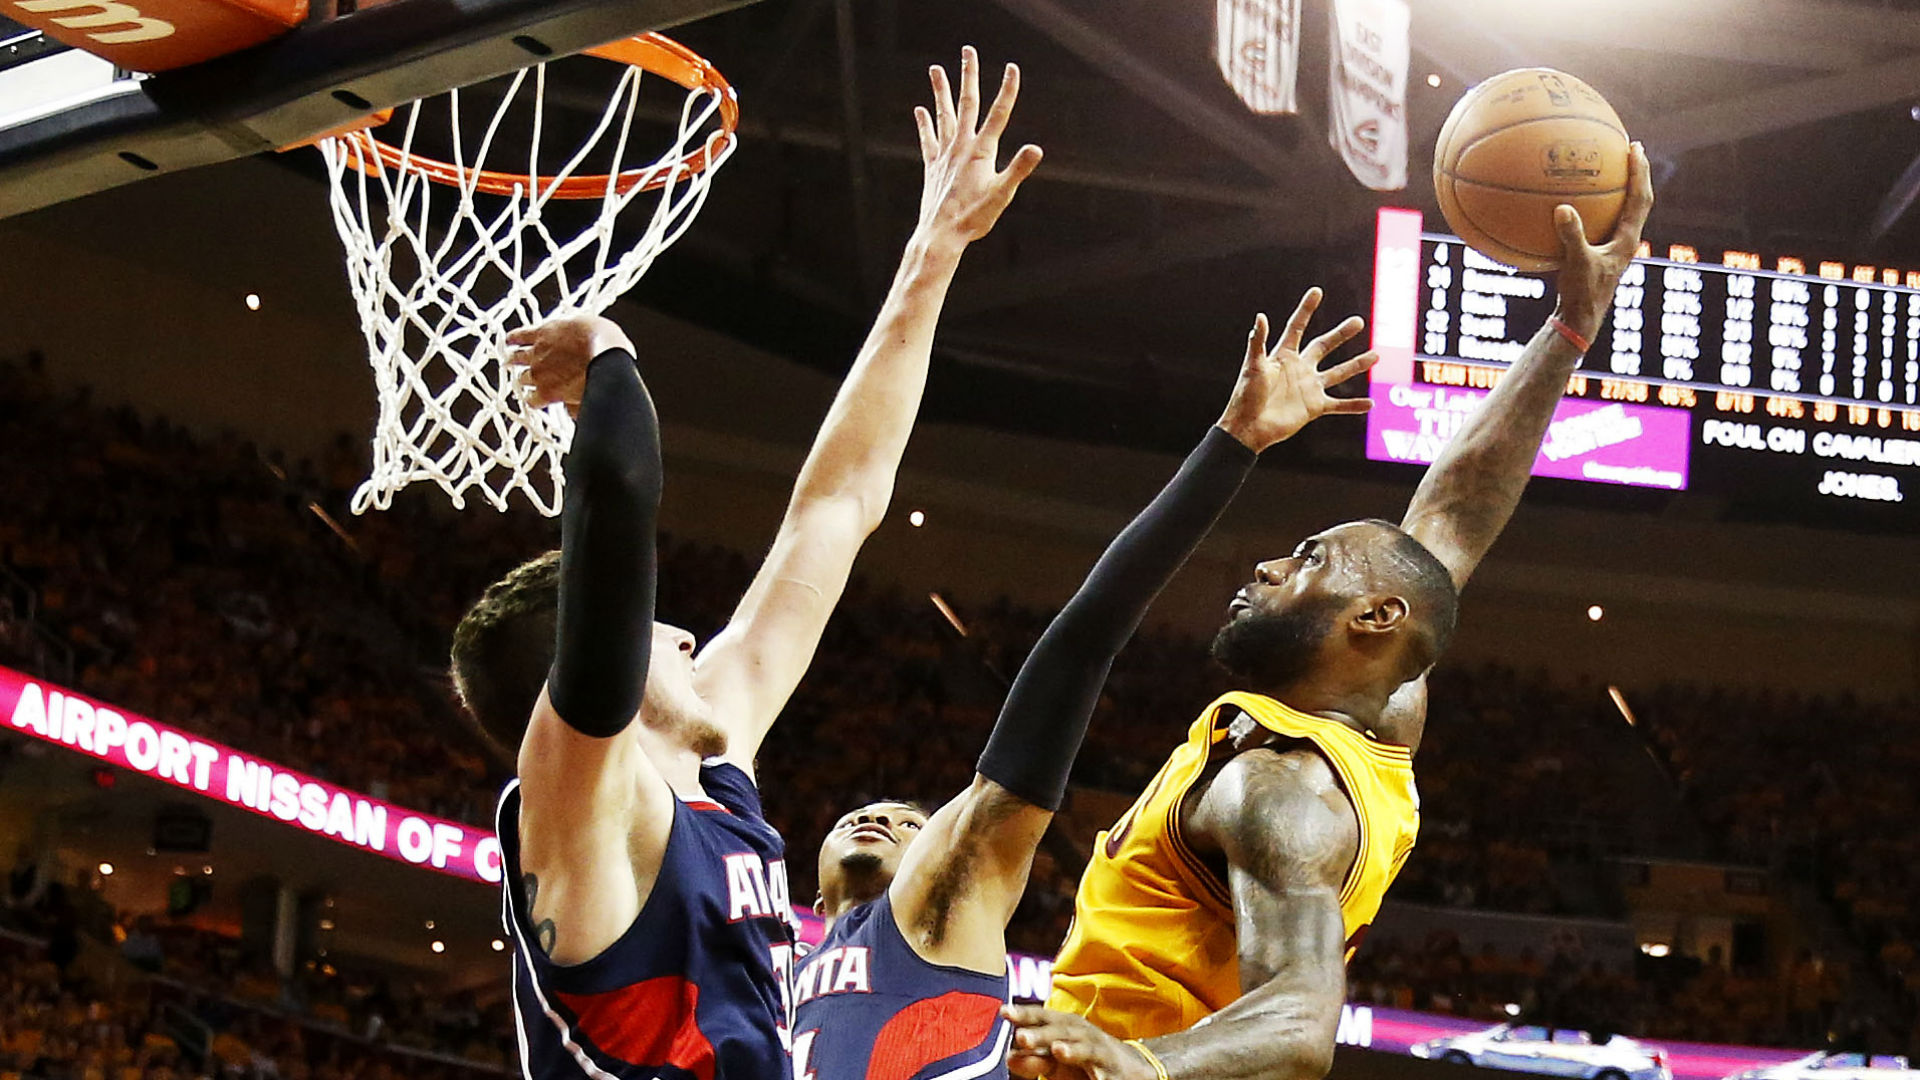 Cavaliers come out on top in fierce Game 3, take 3-0 series lead